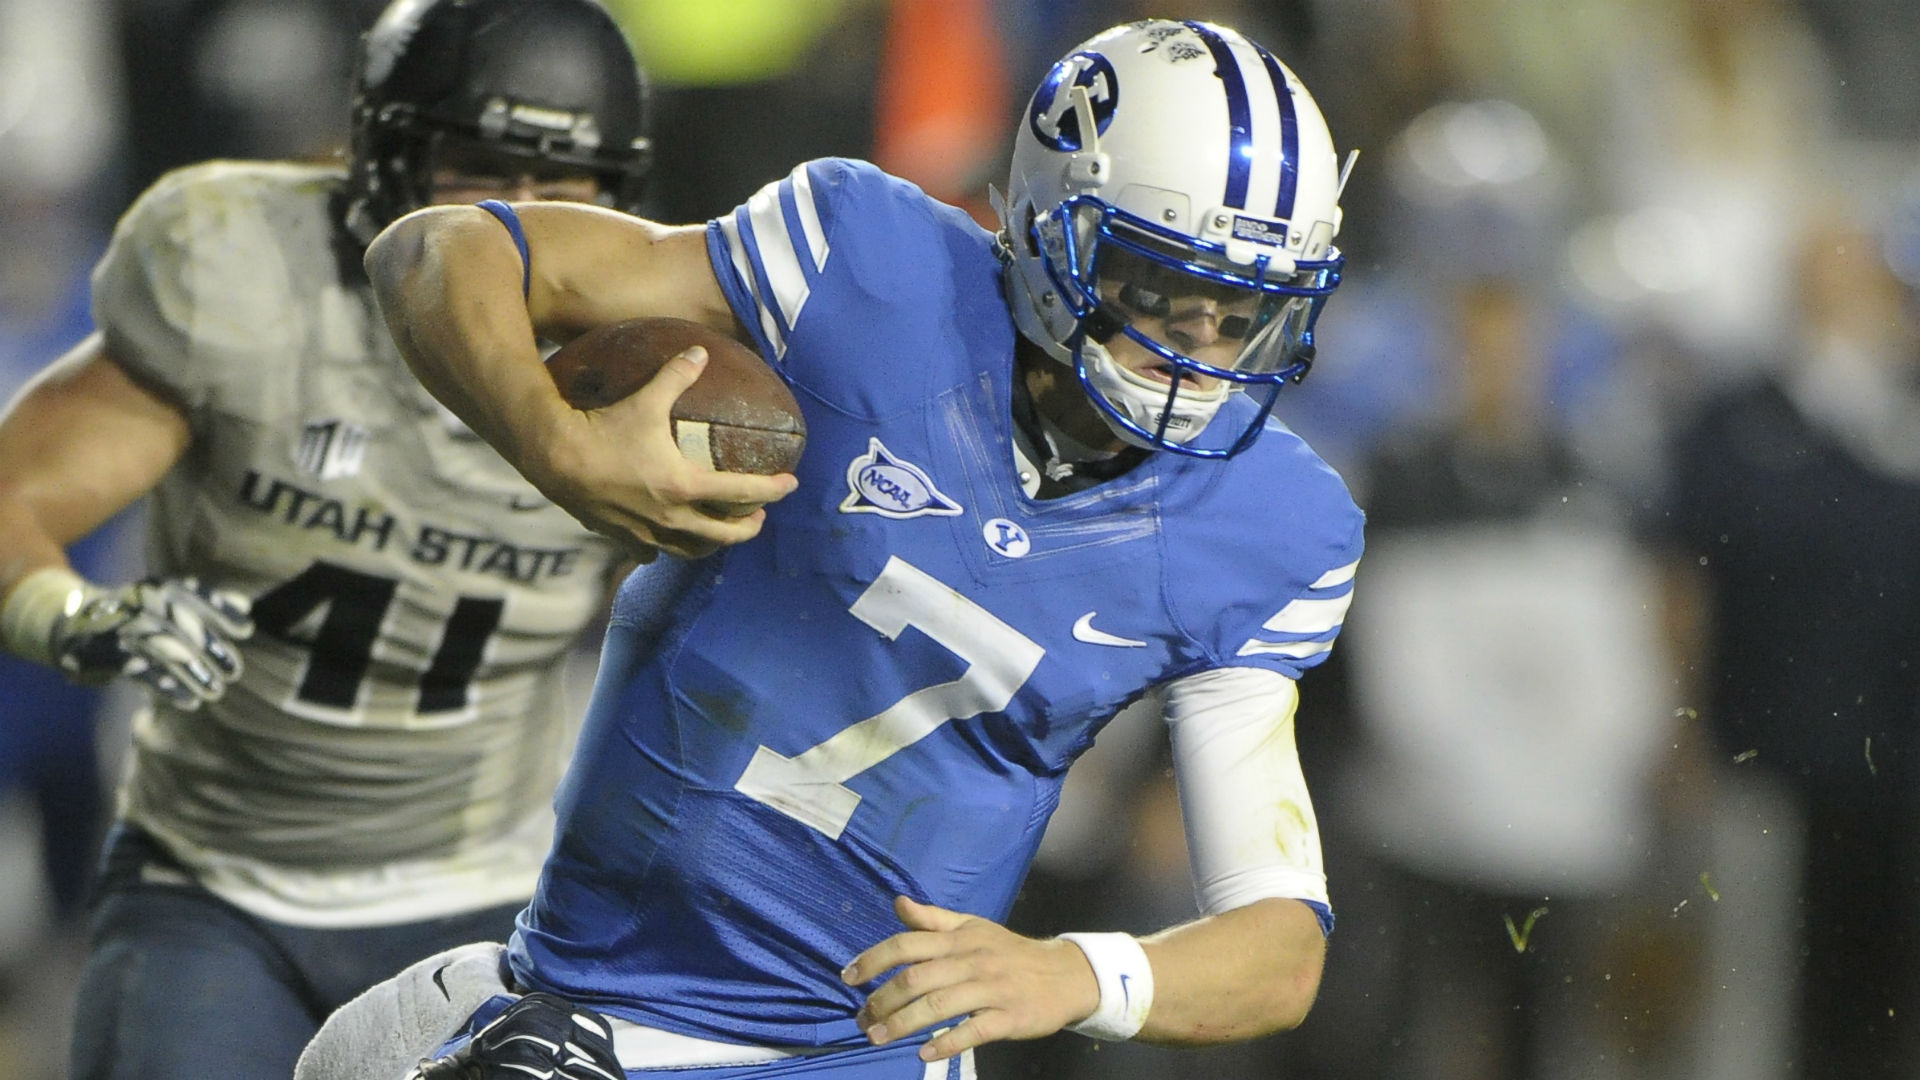 BYU vs. Memphis betting preview and pick – Tigers favored in first postseason appearance since 2008